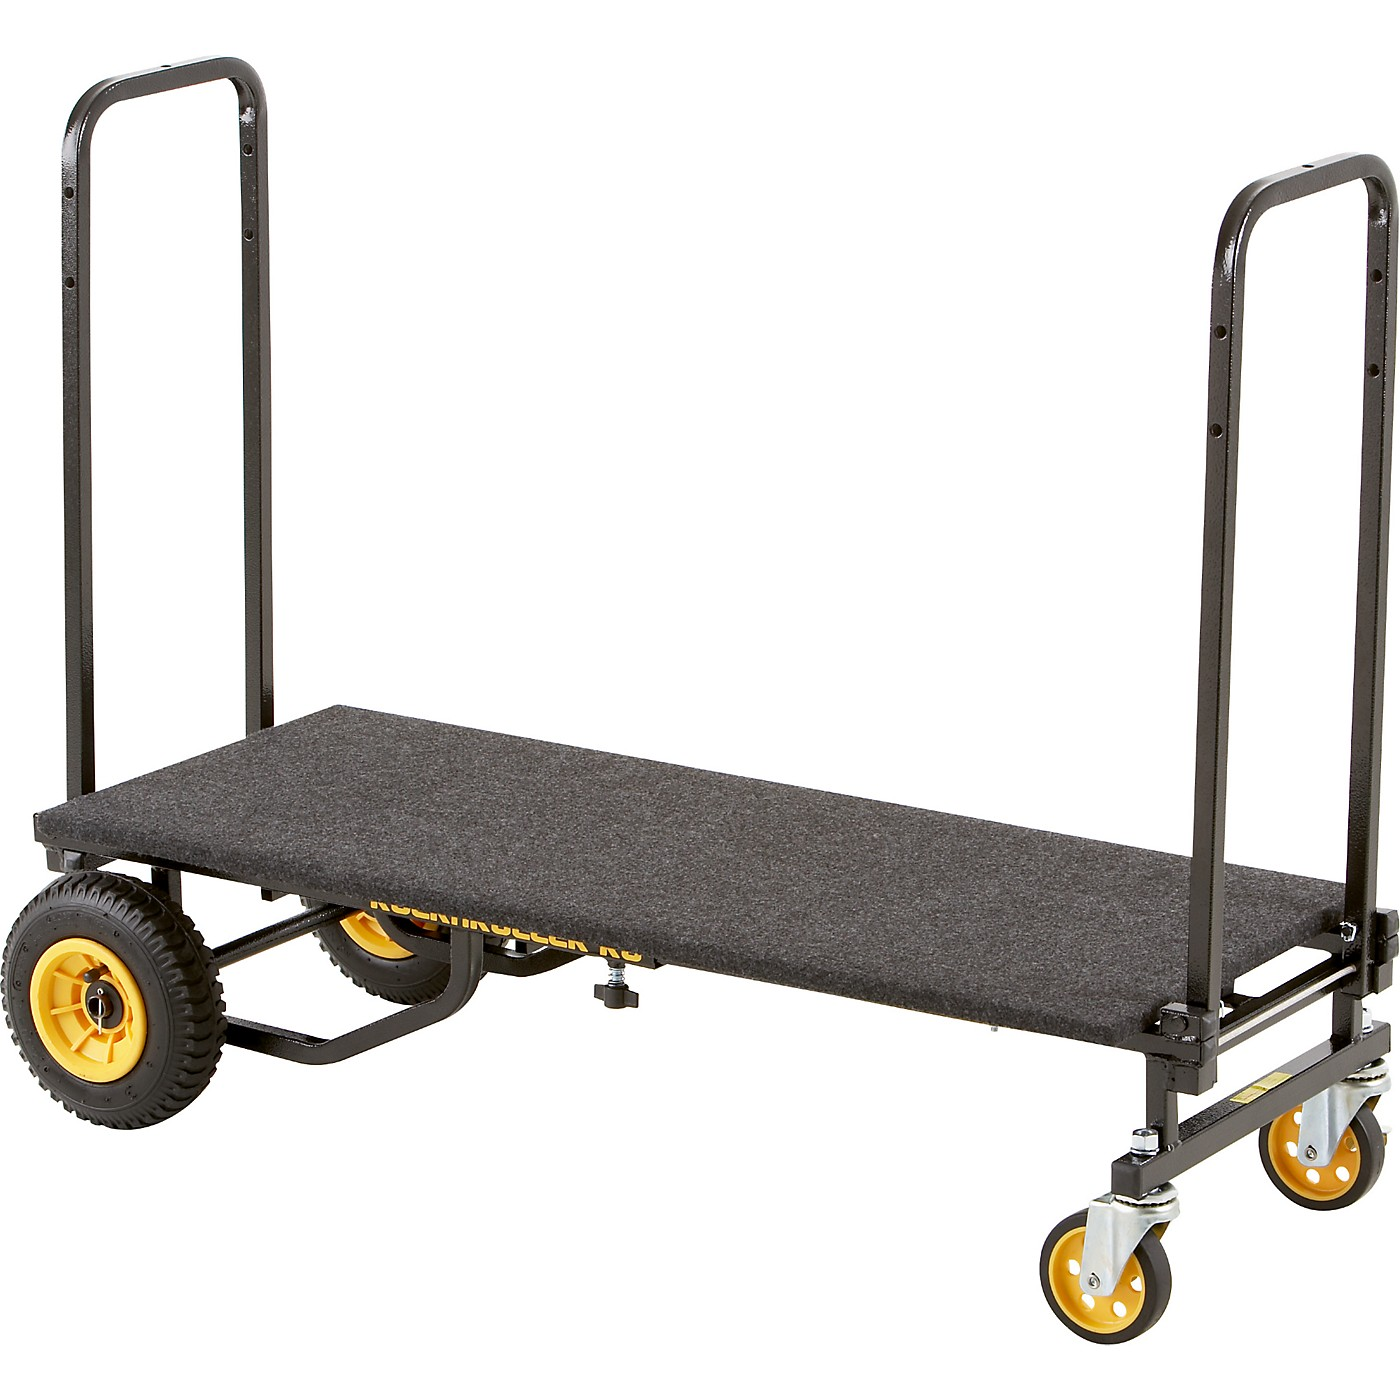 Rock N Roller R8RT 8-in1 Mid Multi-Cart with Desk thumbnail